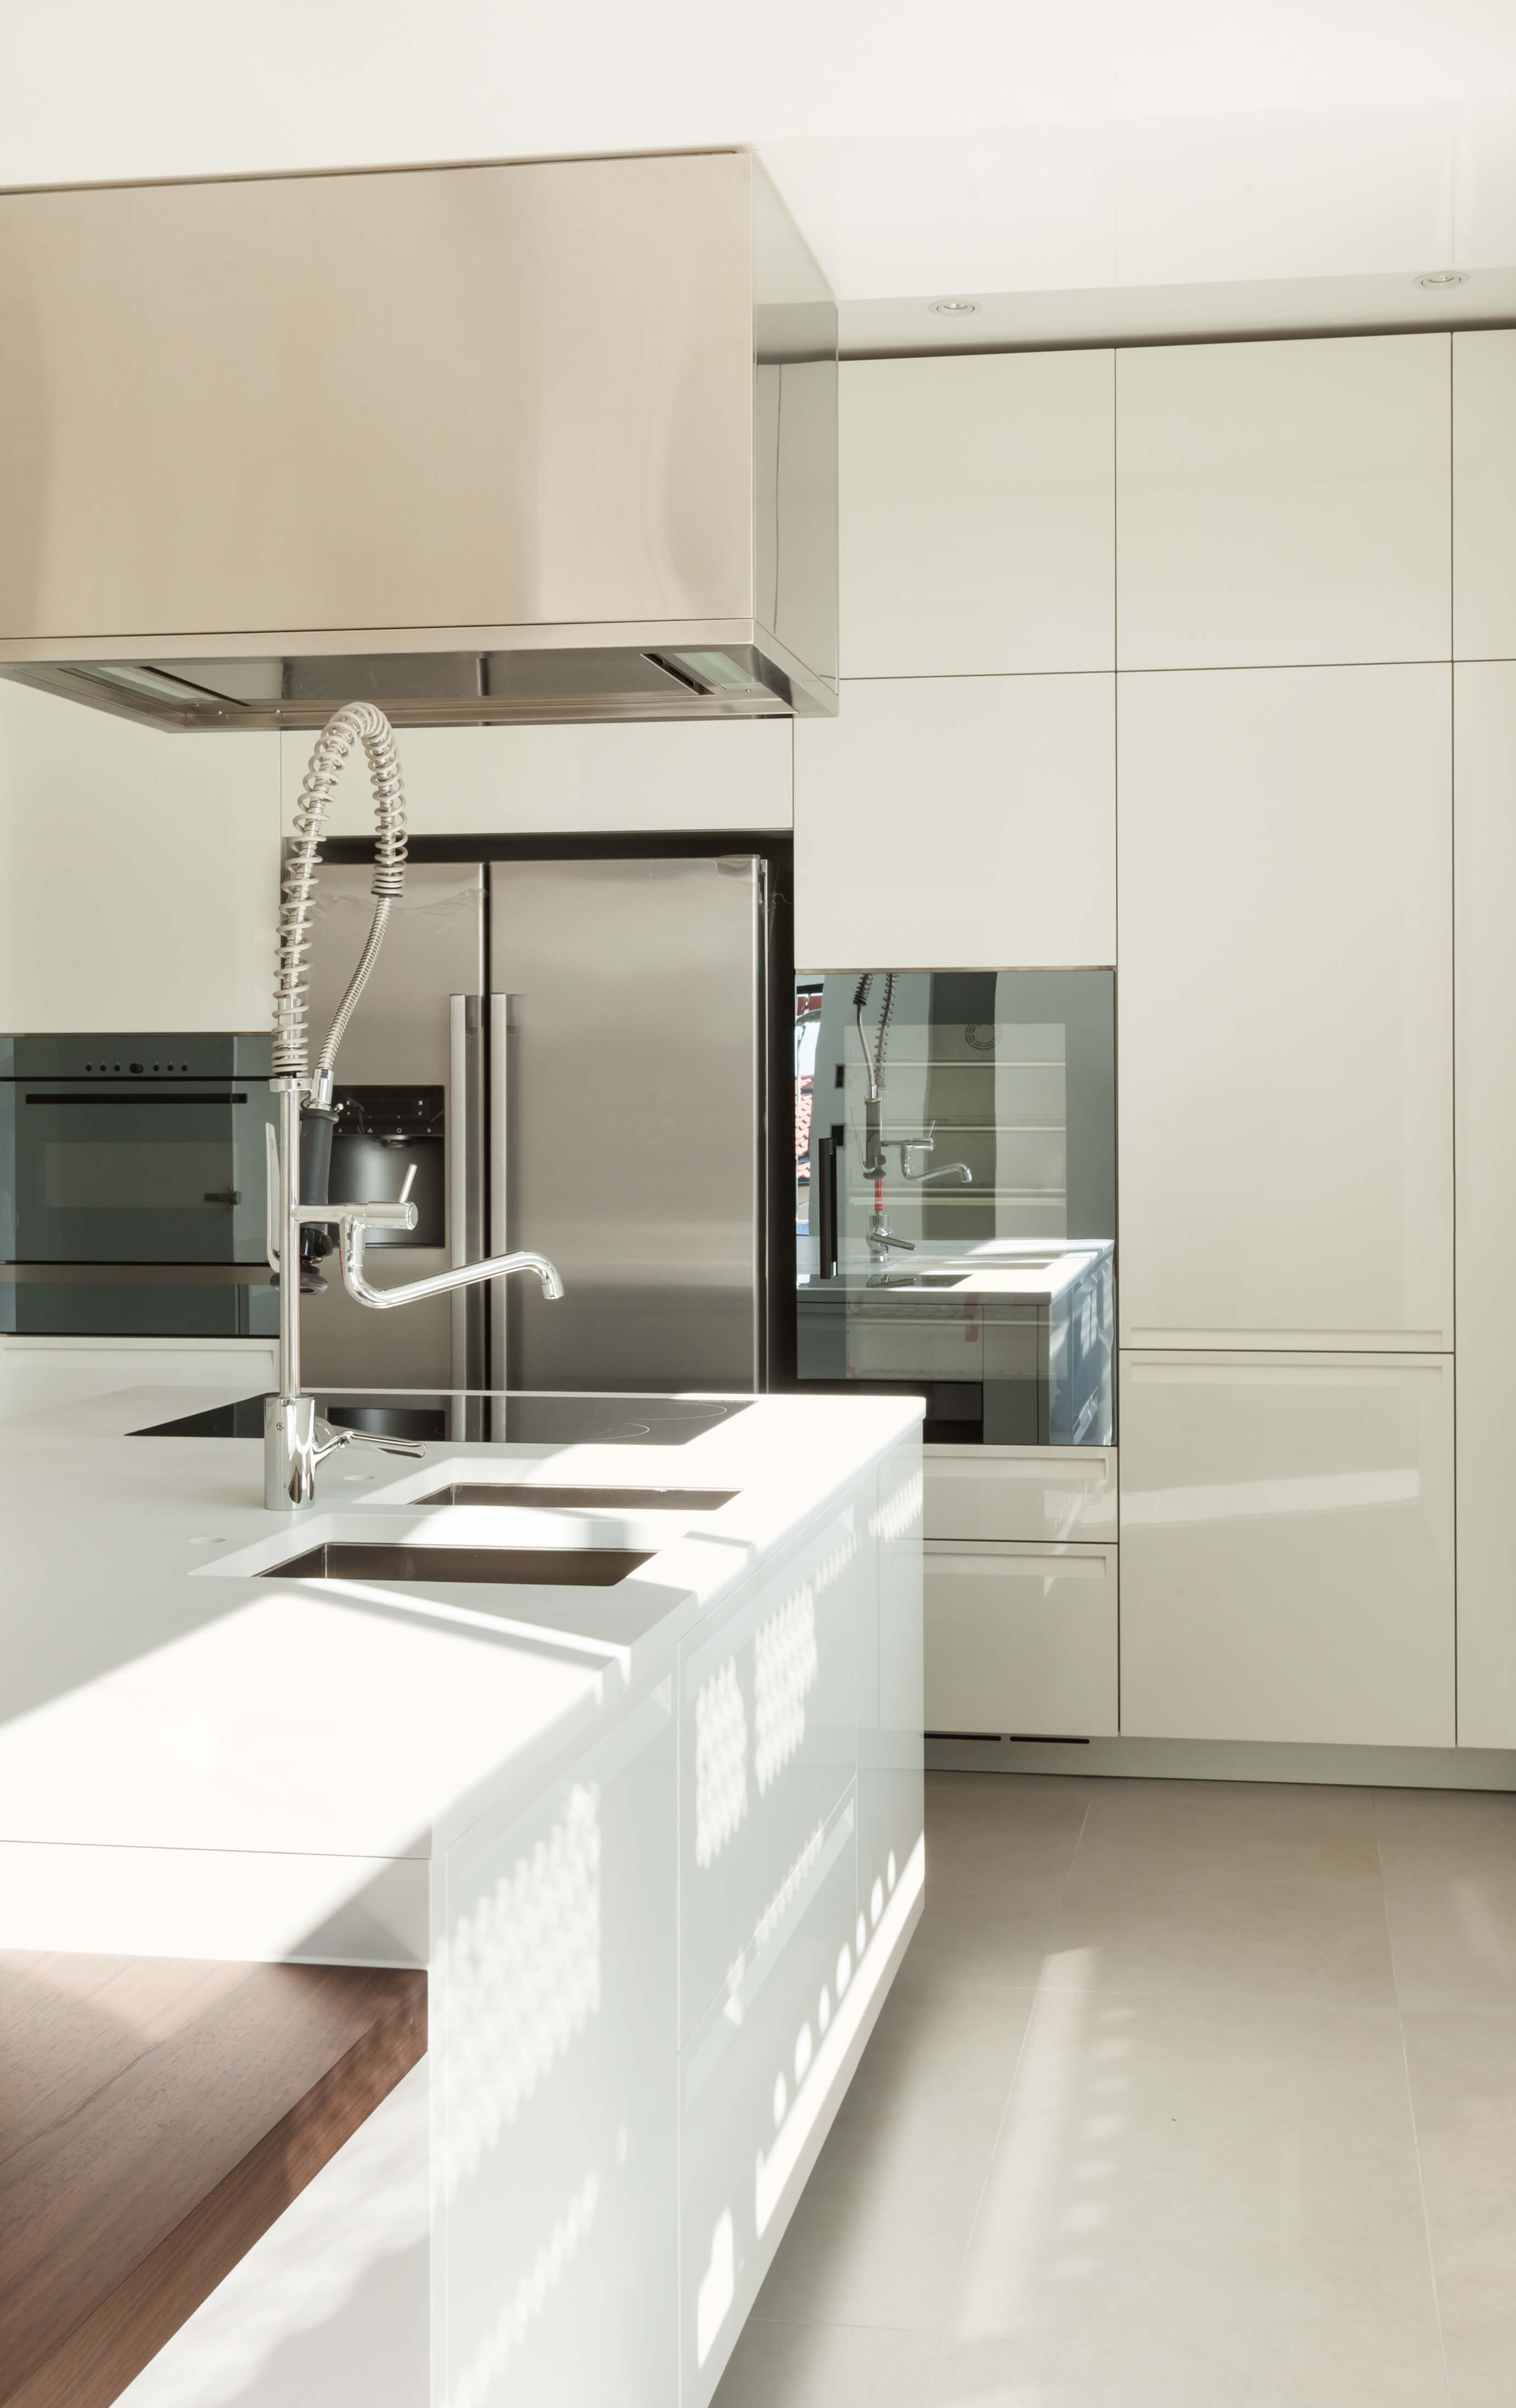 white kitchen designs pictures beige kitchen cabinets Ultra modern slick surfaces abound in this kitchen featuring glossy white cabinetry and countertops over